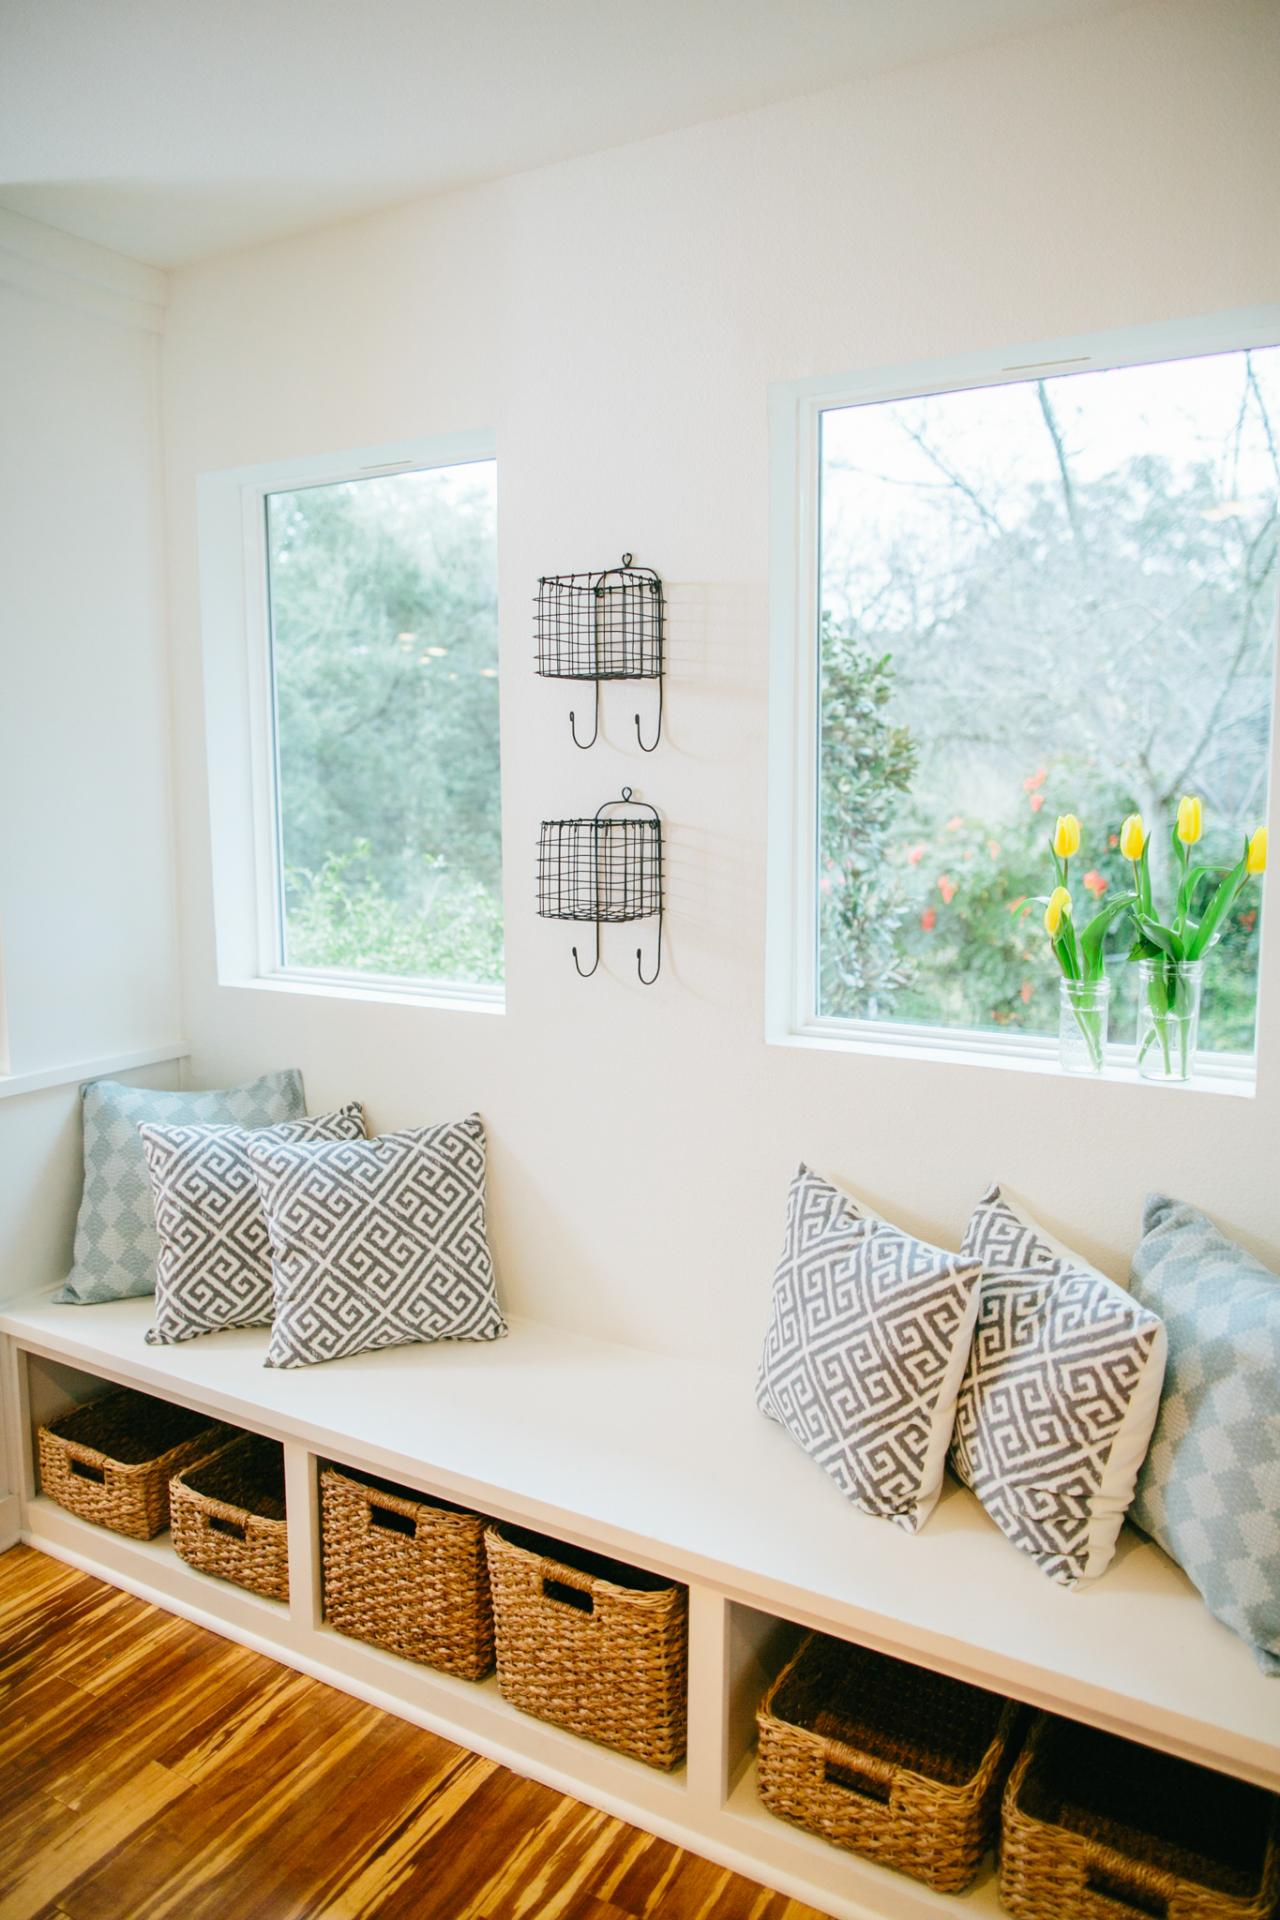 A-little-window-seat-bench-as-a-storage-solution